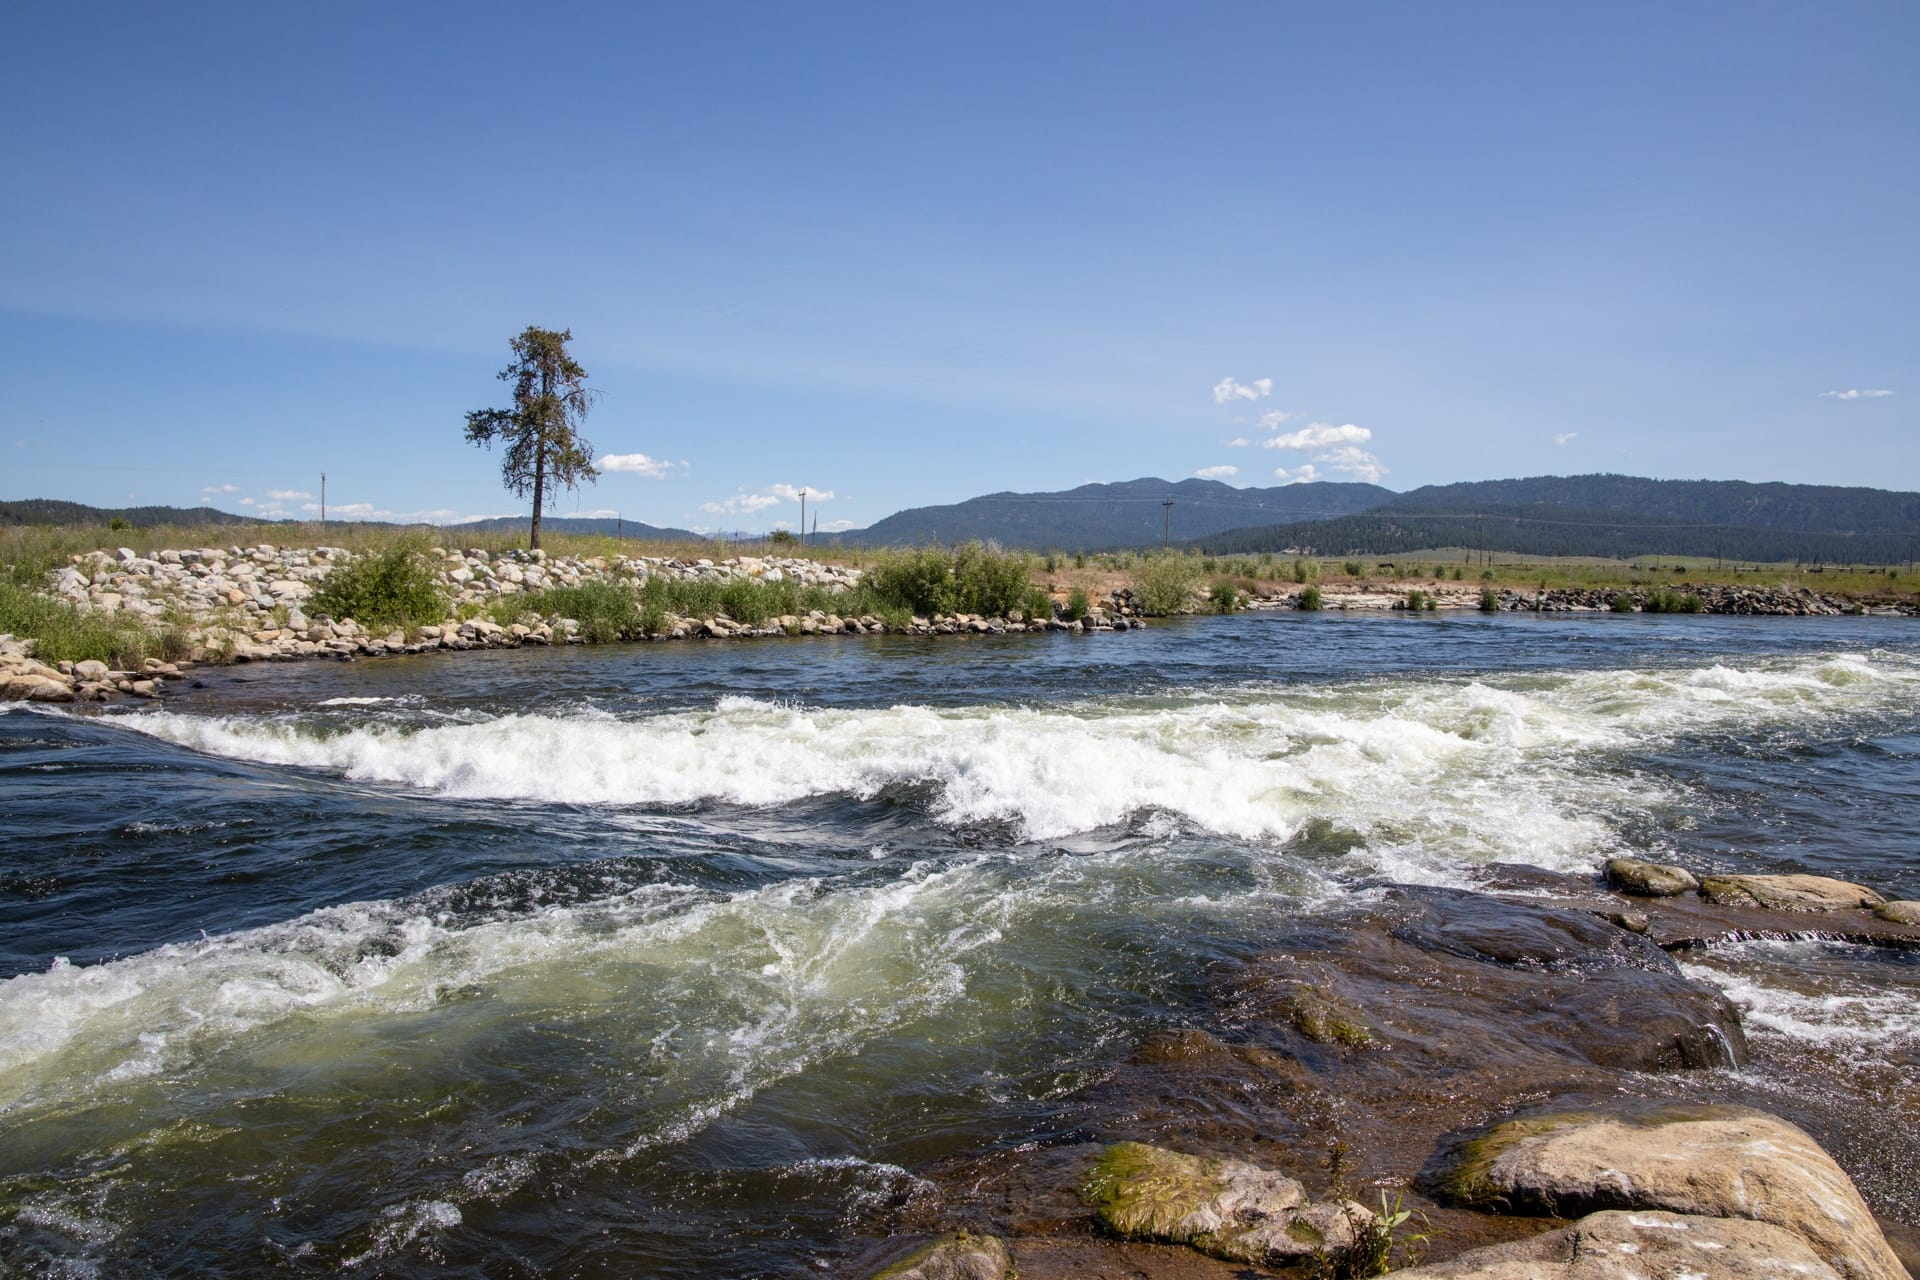 Kelly's Whitewater Park in Cascade Idaho // Hot springs, hiking, off-roading, biking, and more. Explore the best outdoor recreation in Cascade with this 4-day Cascade Idaho itinerary.